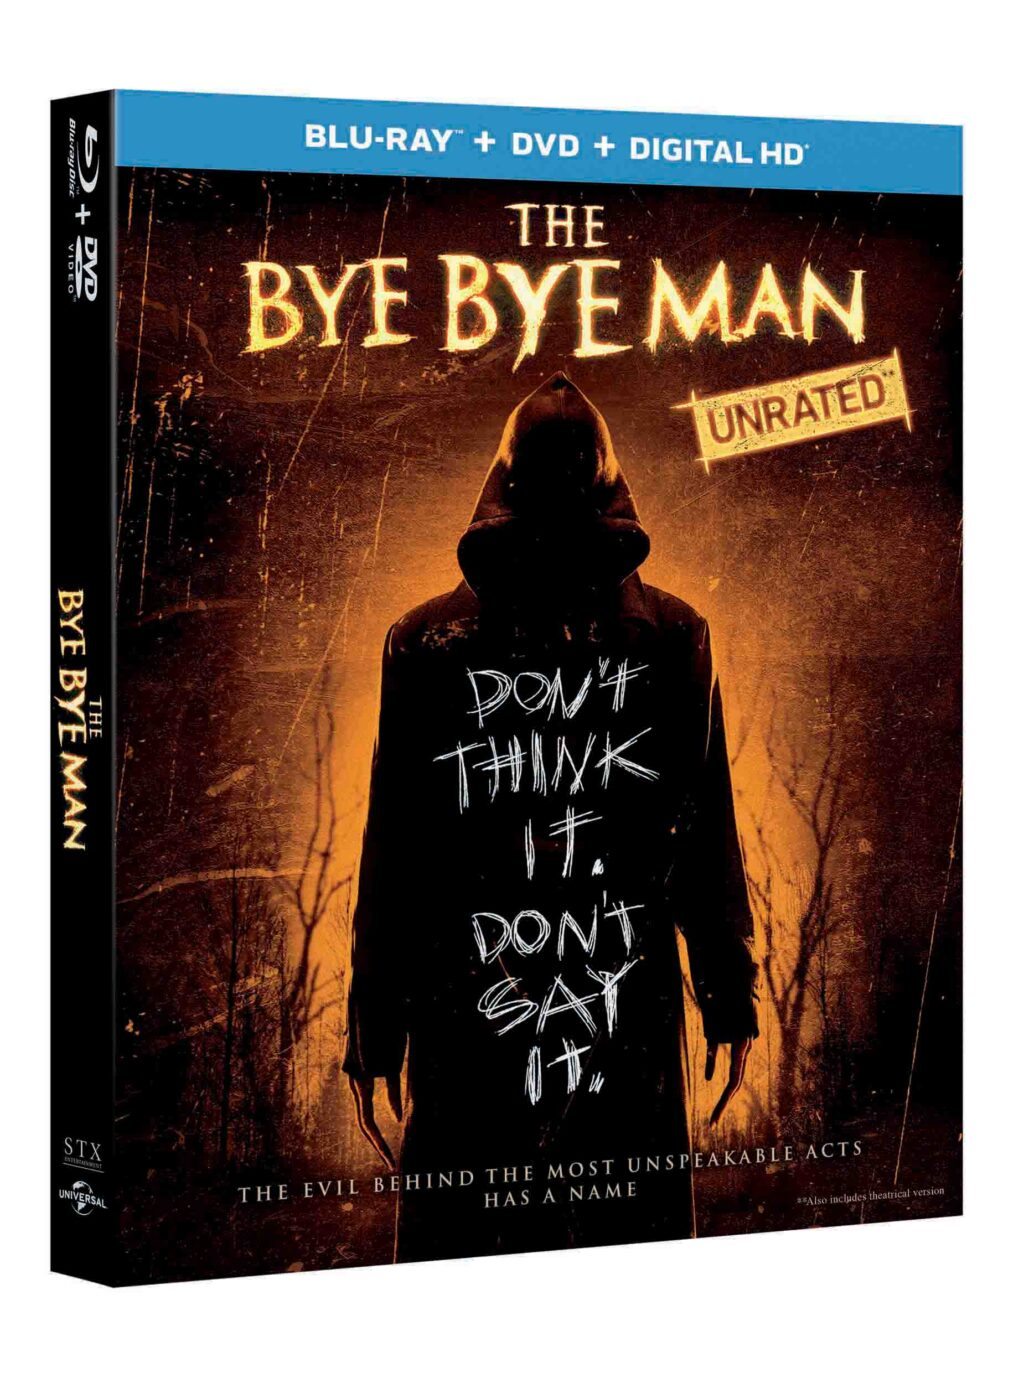 byebyemanhomevideo 1024x1378 - Win a Blu-ray 3-Pack of The Bye Bye Man, The Gift, and The Boy!